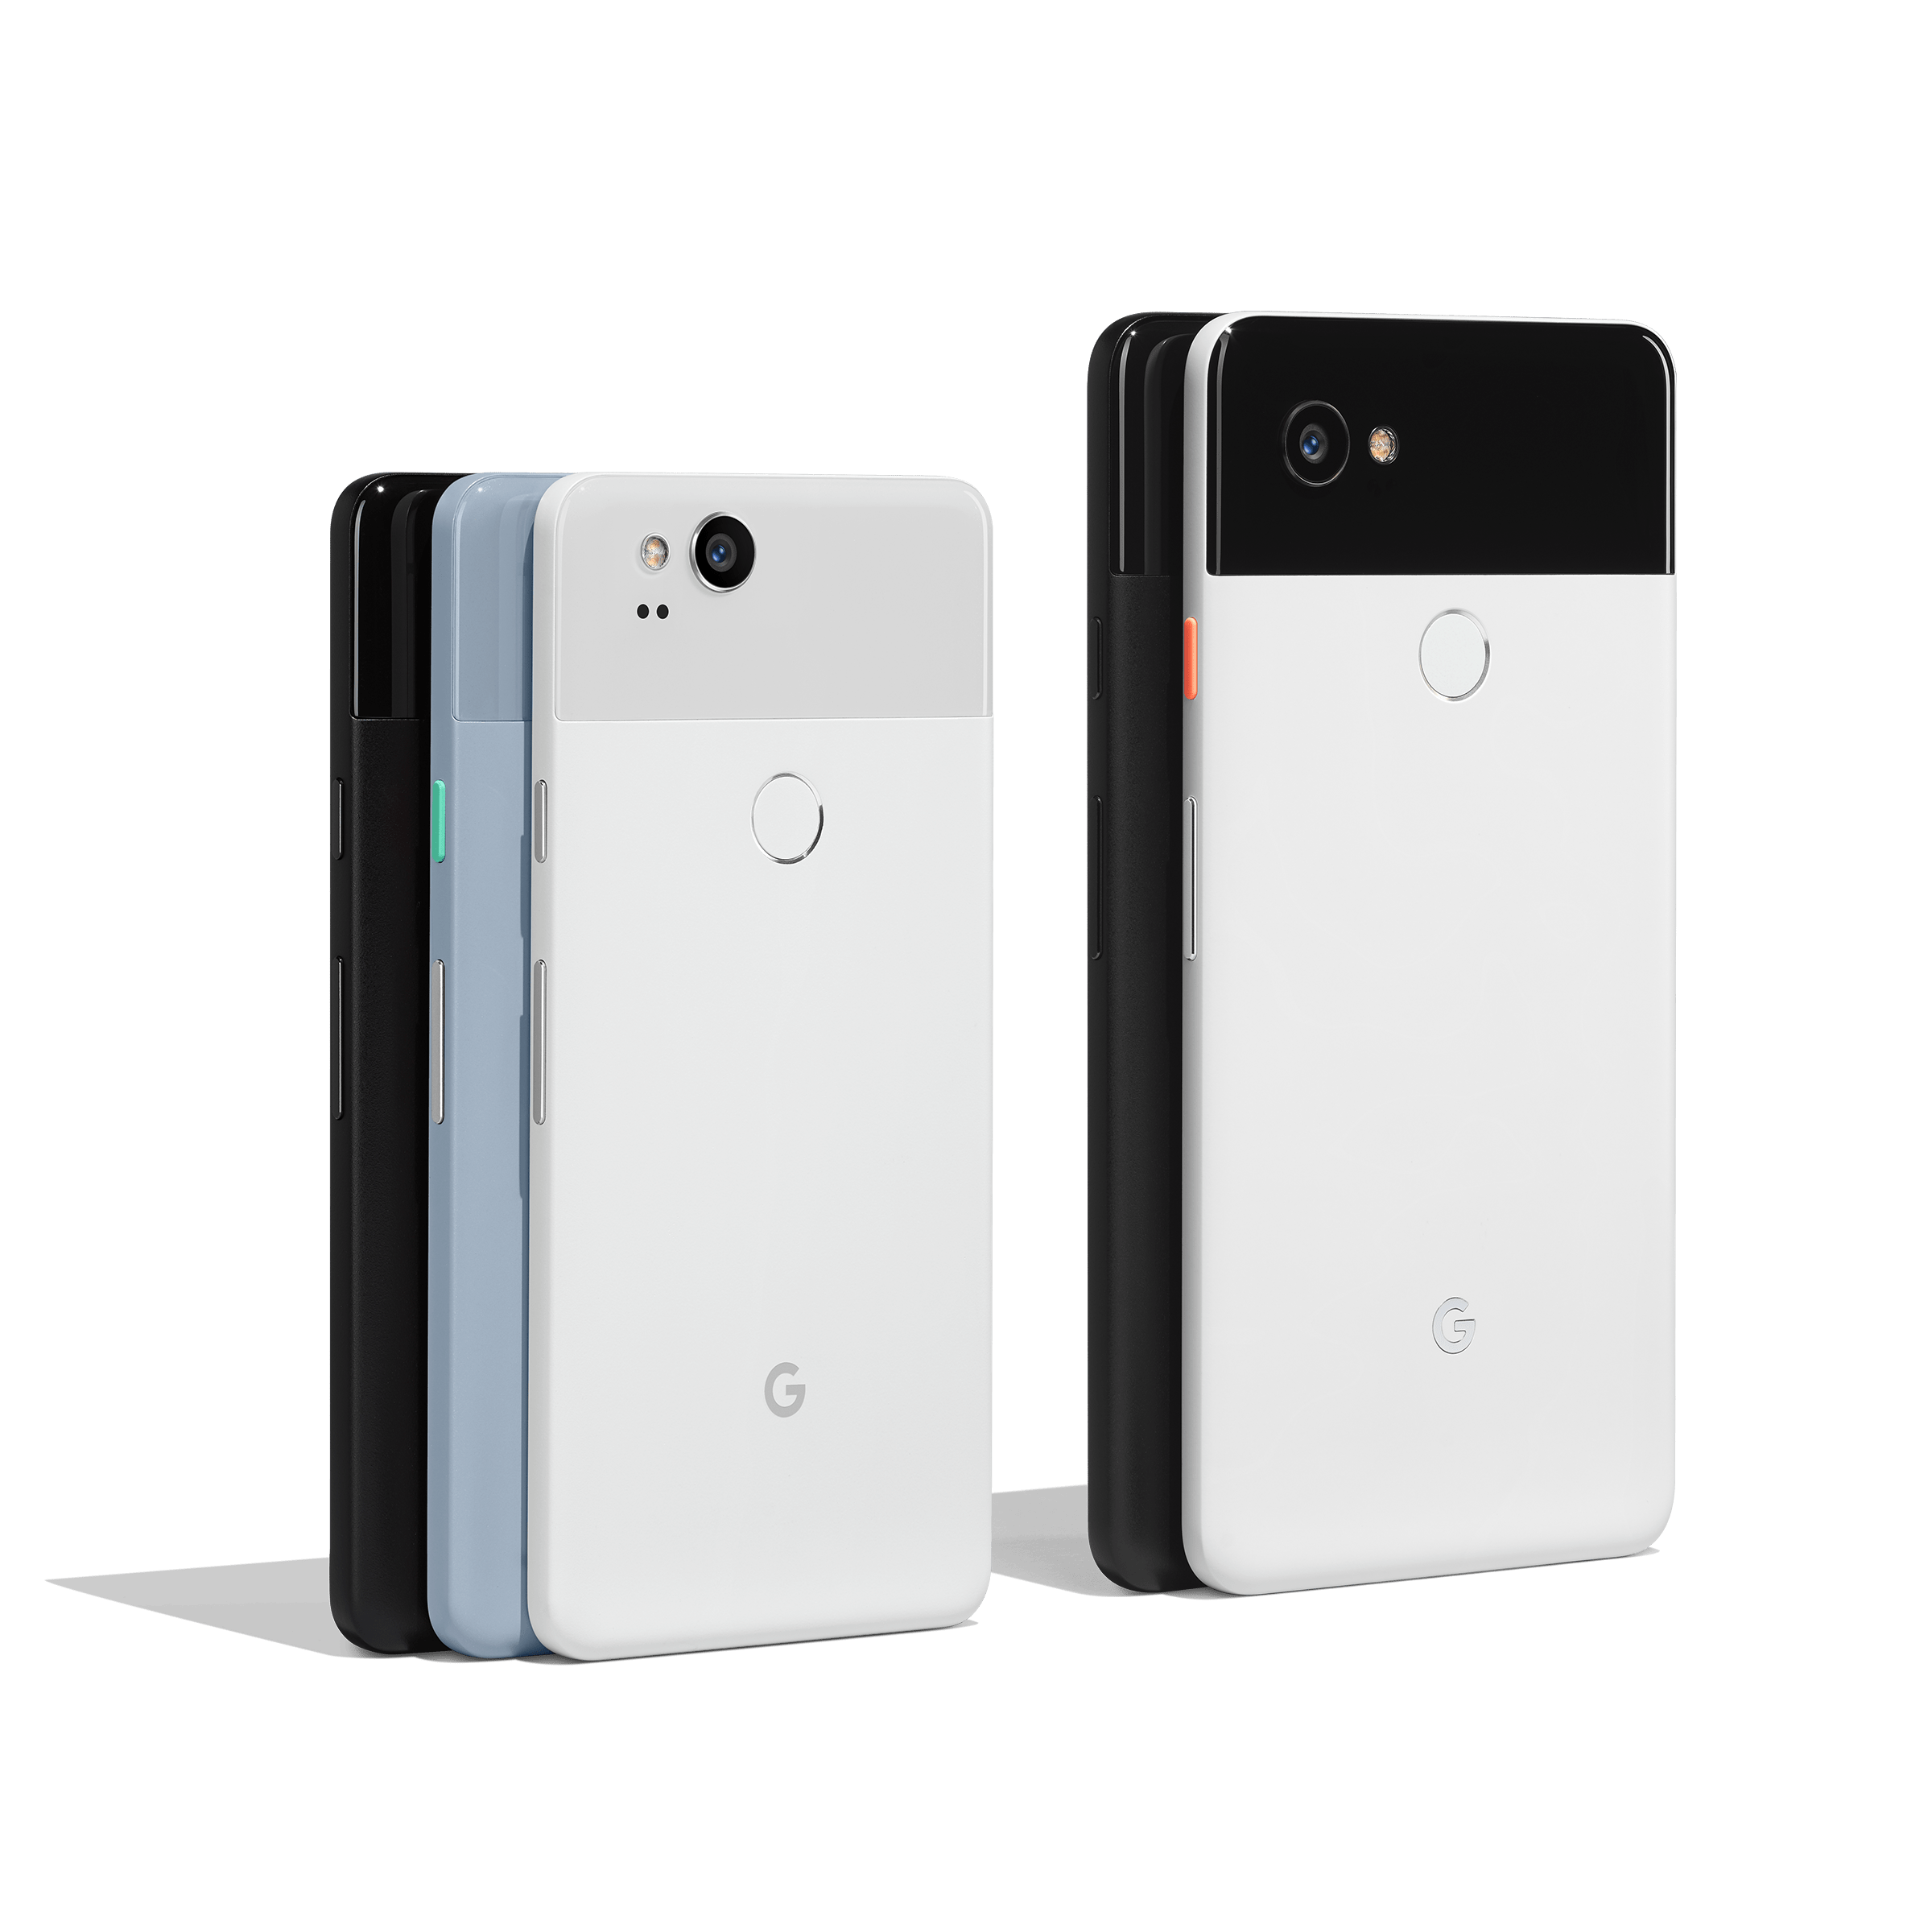 Google announces the Pixel 2 ($649) and Pixel 2 XL ($849 ...